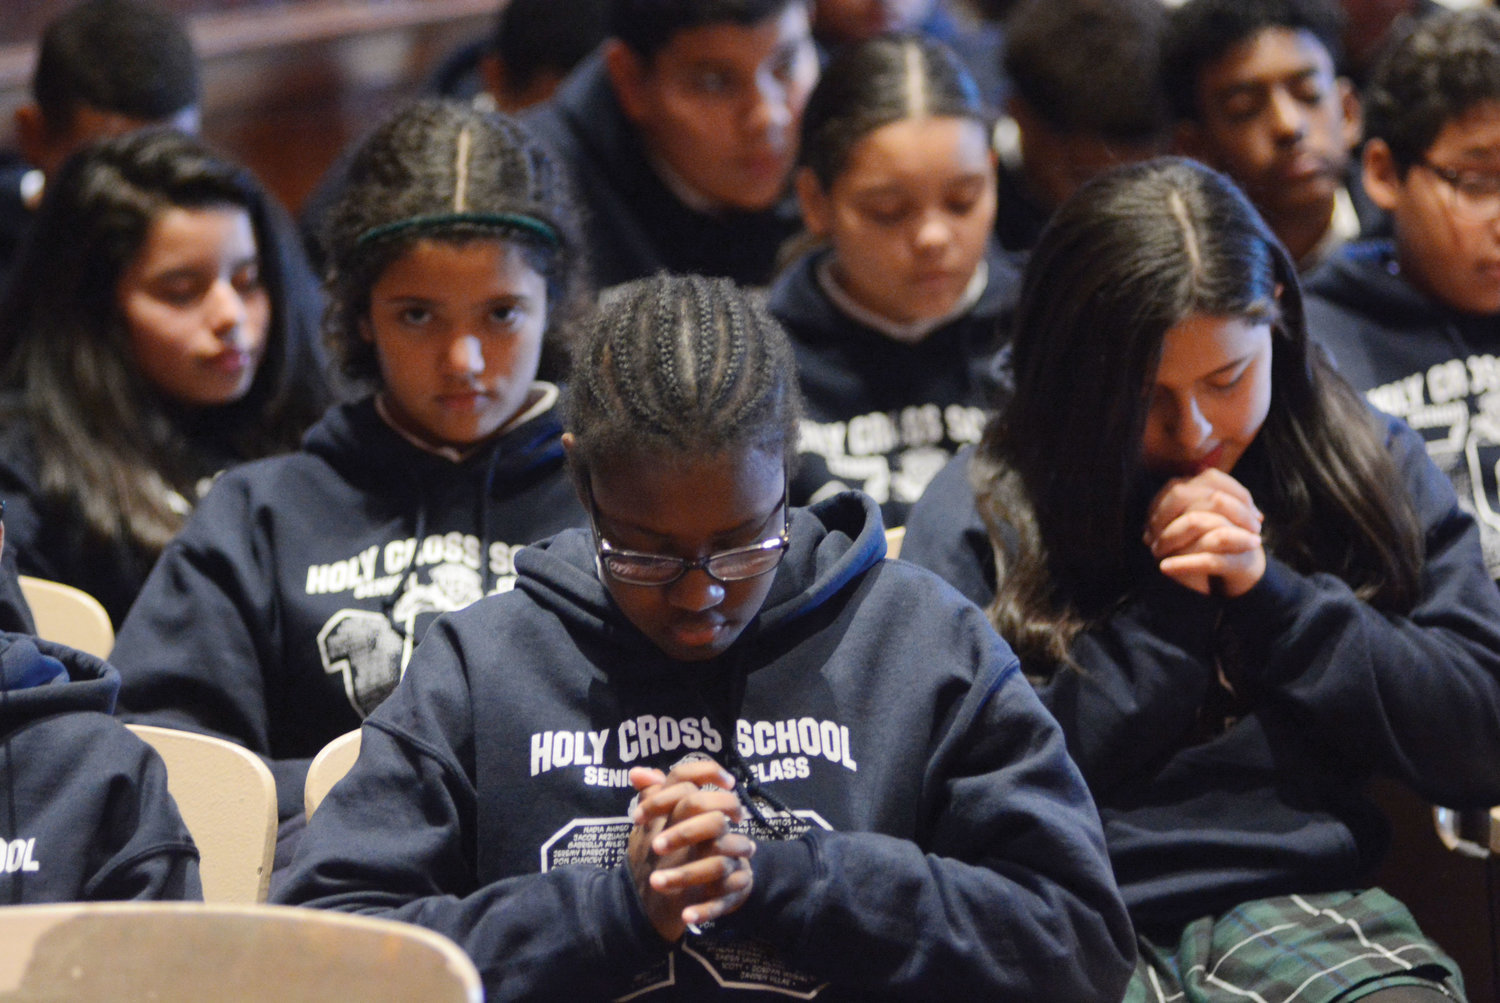 Students from Holy Cross School pray.